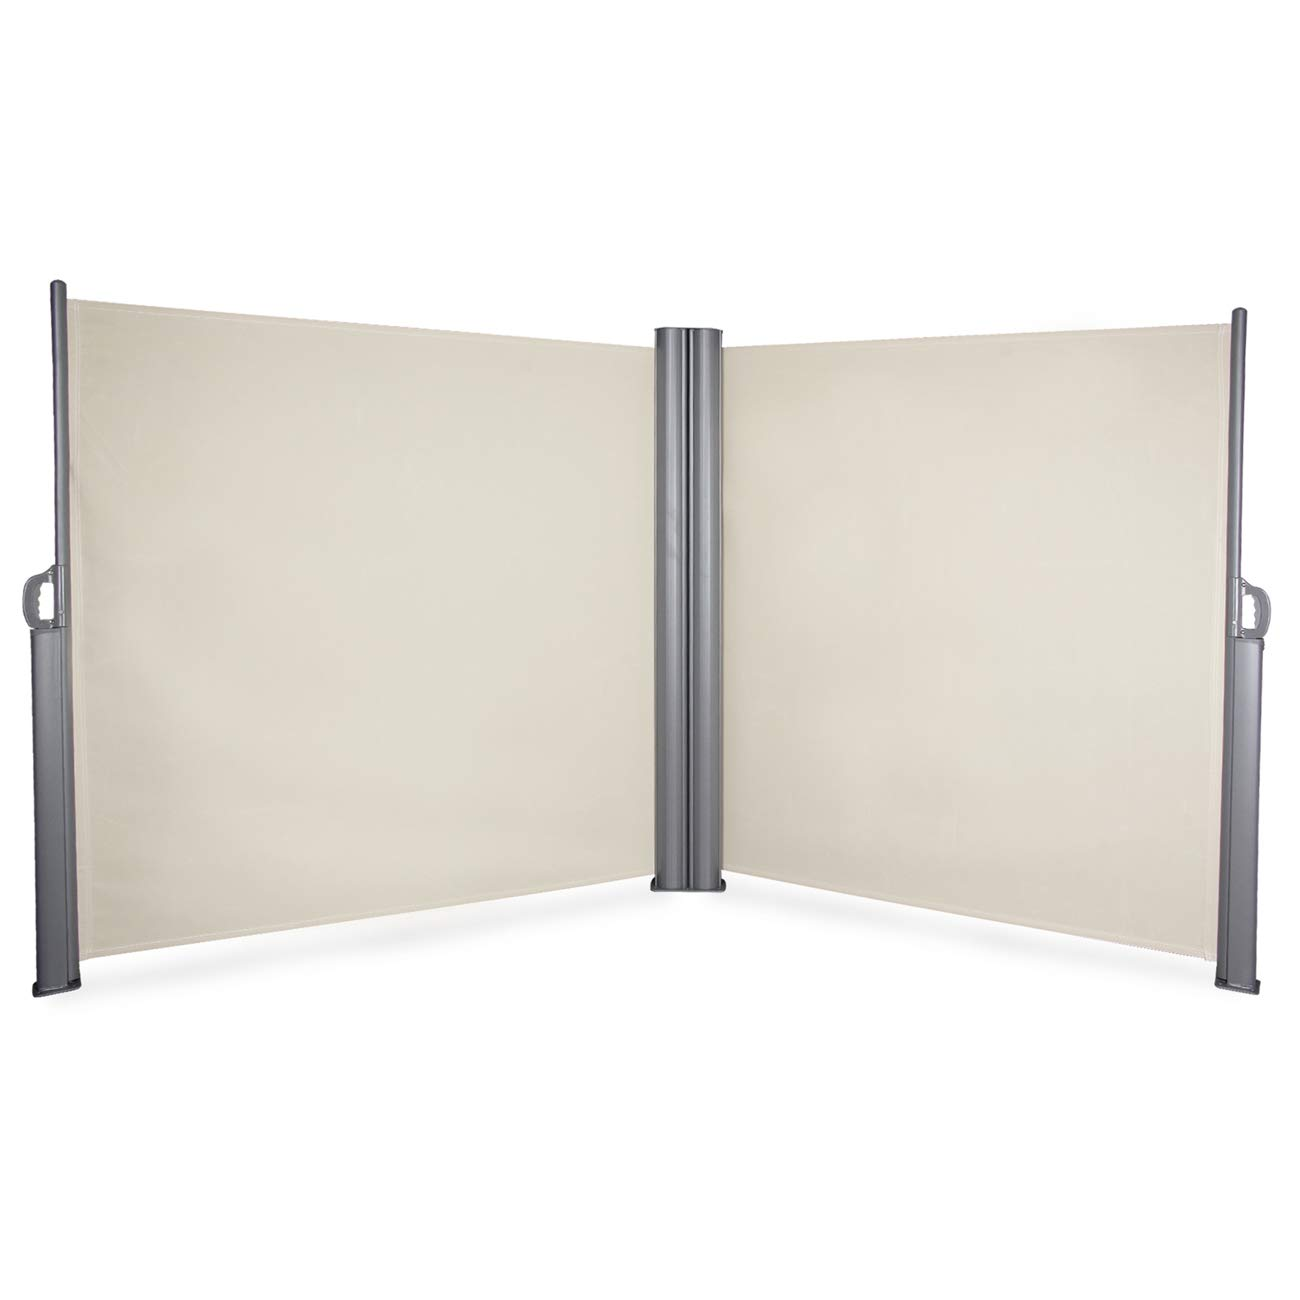 BELLEZE 19.6 x 5.2ft Commercial Double Side Awning Privacy Screen Retractable Divider Garden Terrace Outdoor, Beige